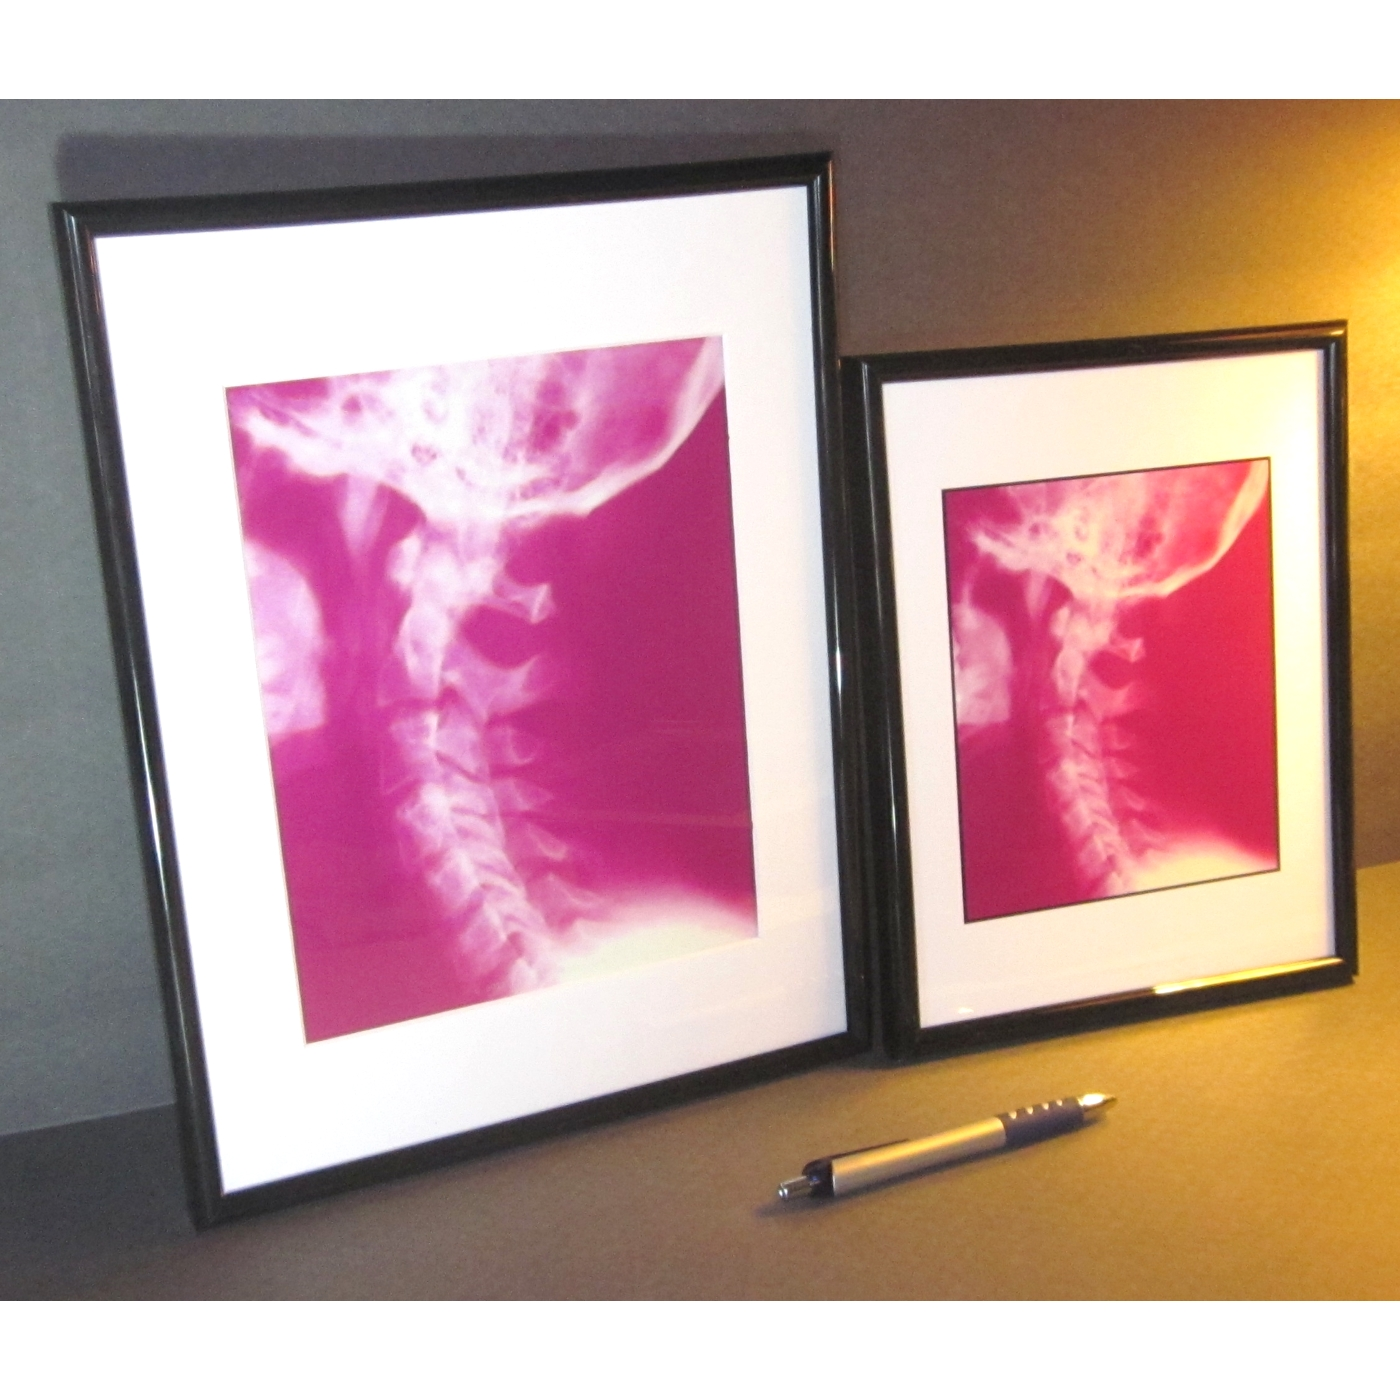 chiropractic framed artwork 11 x 14 compared to 85 x 11